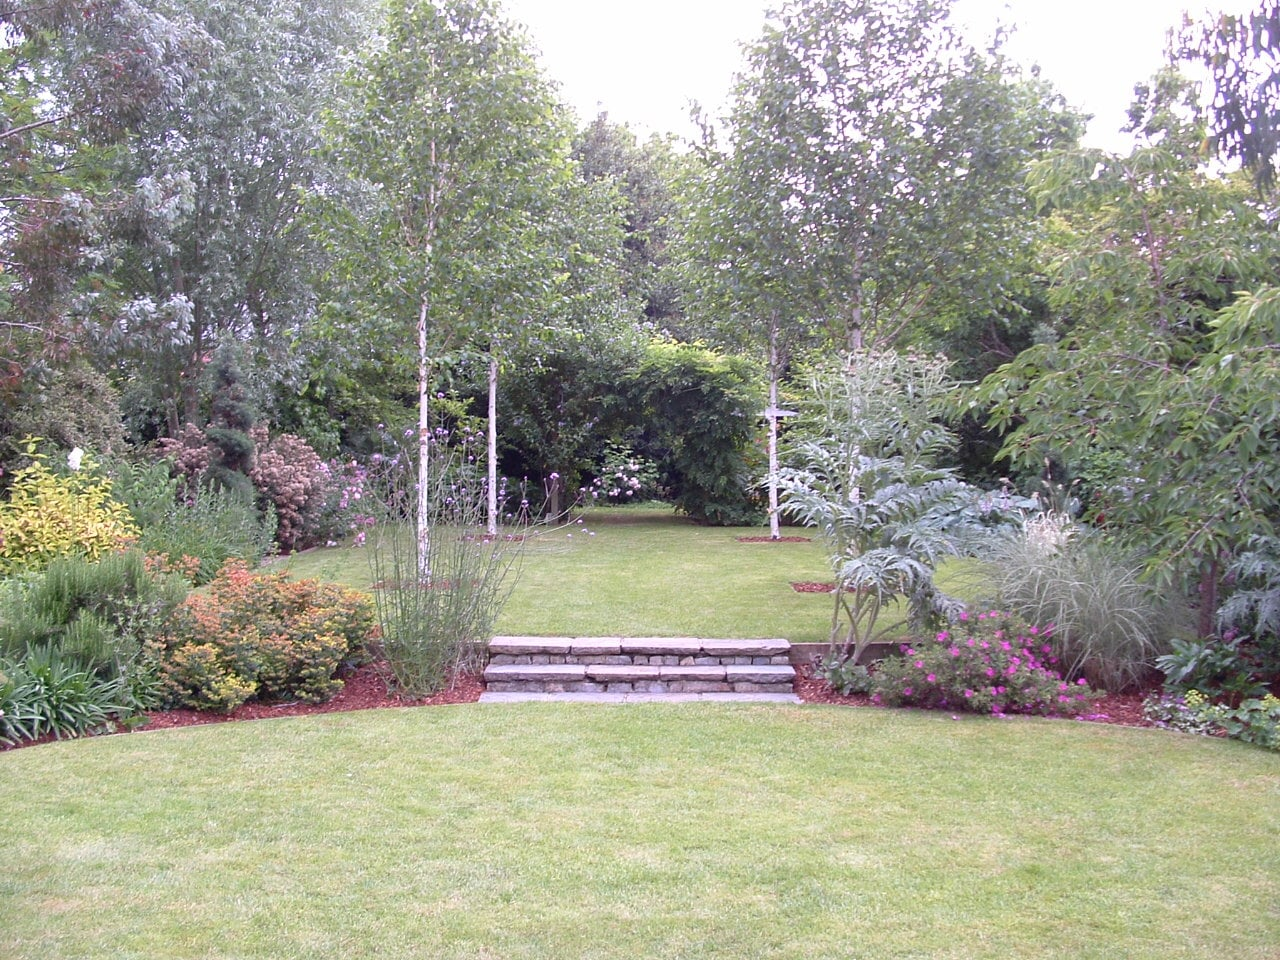 Four white birch trees, Betula utilis 'Jaqumontii'form a frame to a view though formal lawns flanked by dense borders. Steps in the grass separate the garden rooms.